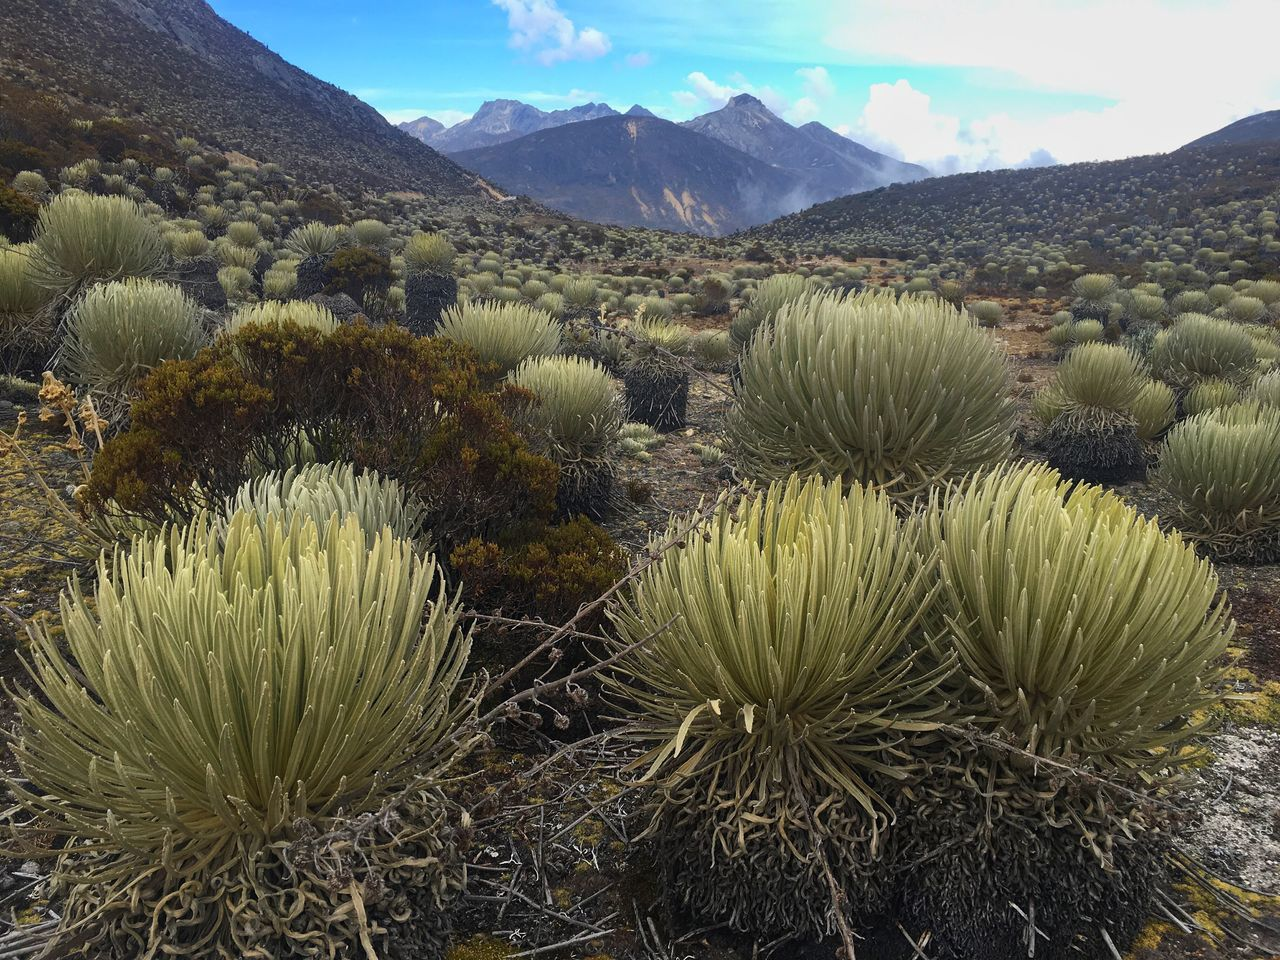 growth, nature, mountain, cactus, tranquility, plant, beauty in nature, no people, field, scenics, day, mountain range, outdoors, sky, saguaro cactus, close-up